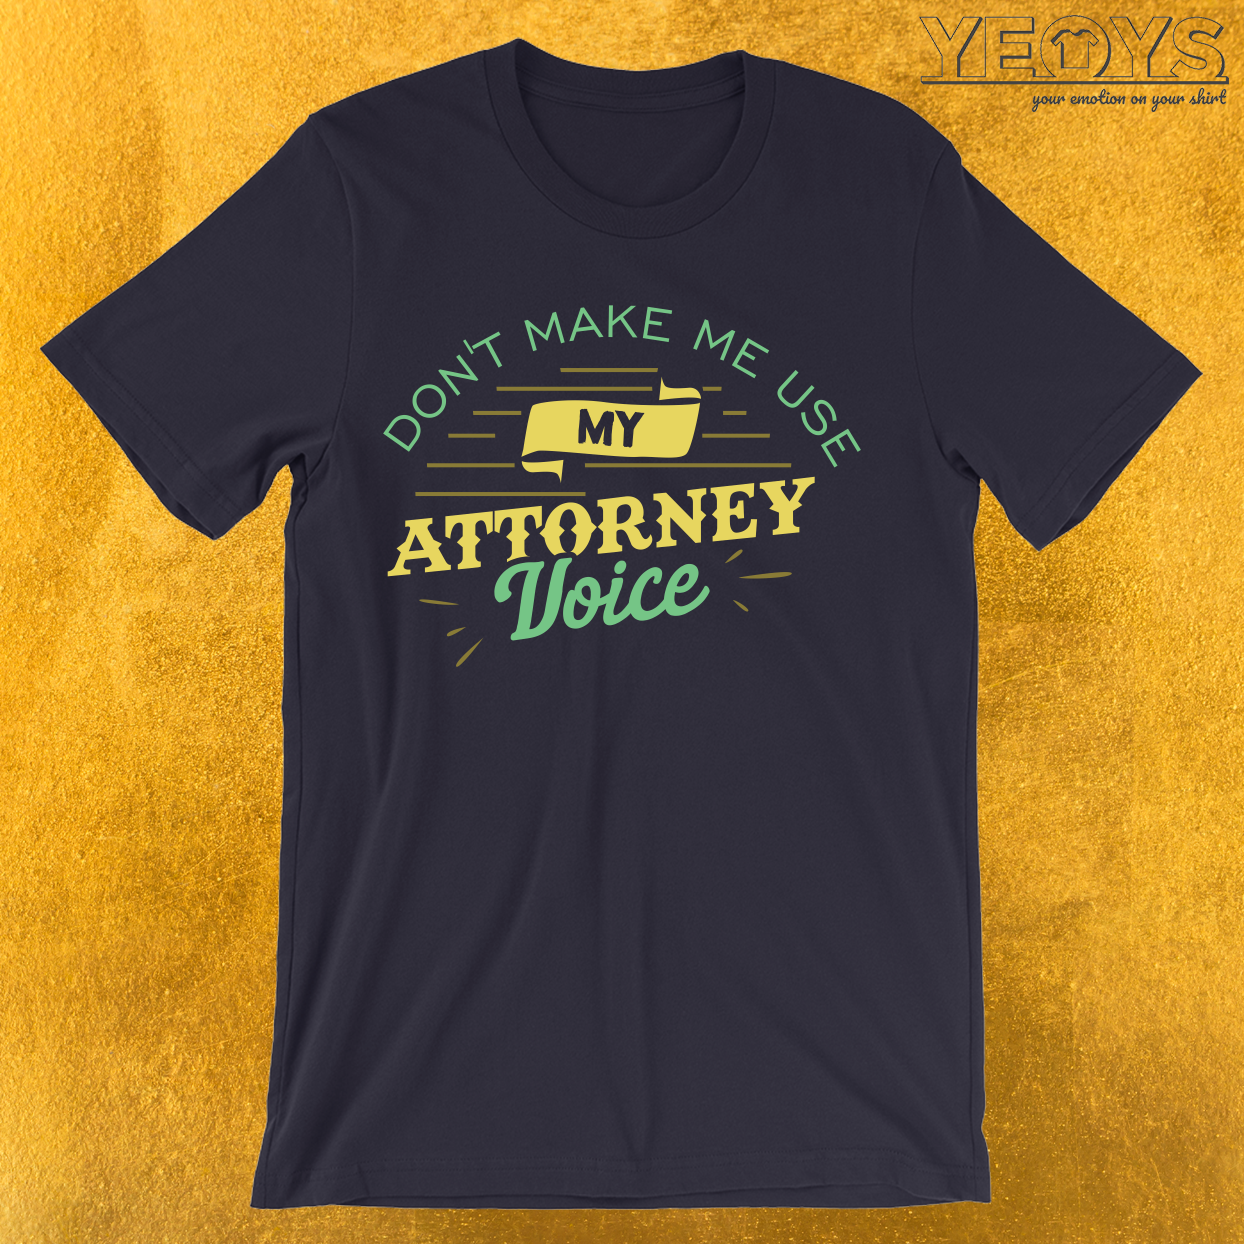 Don't Make Me Usy My Attorney Voice T-Shirt